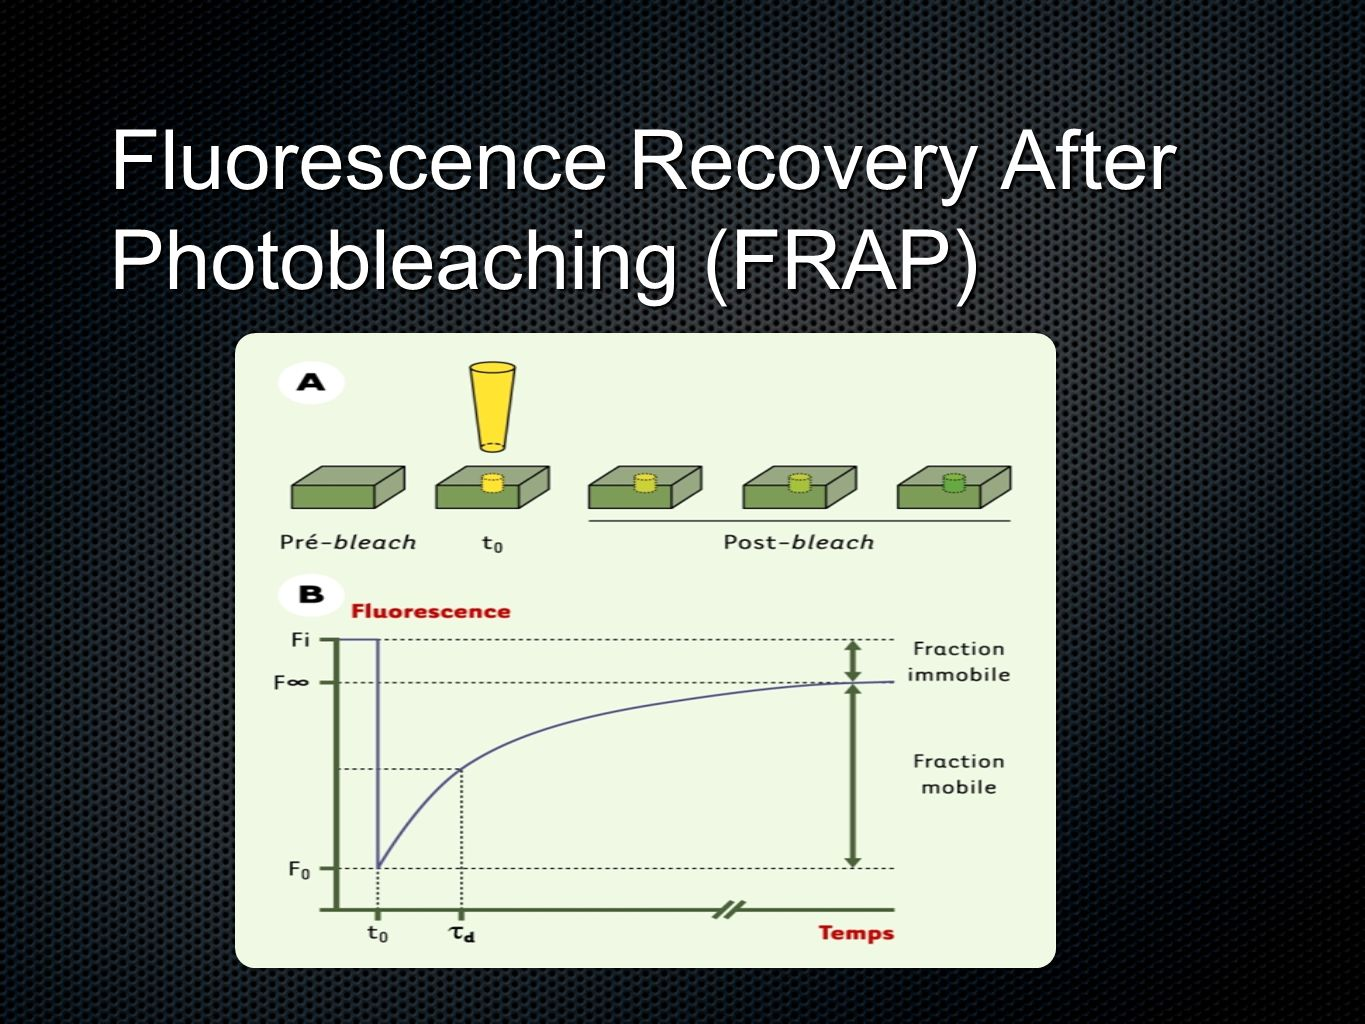 Fluorescence Recovery After Photobleaching (FRAP)